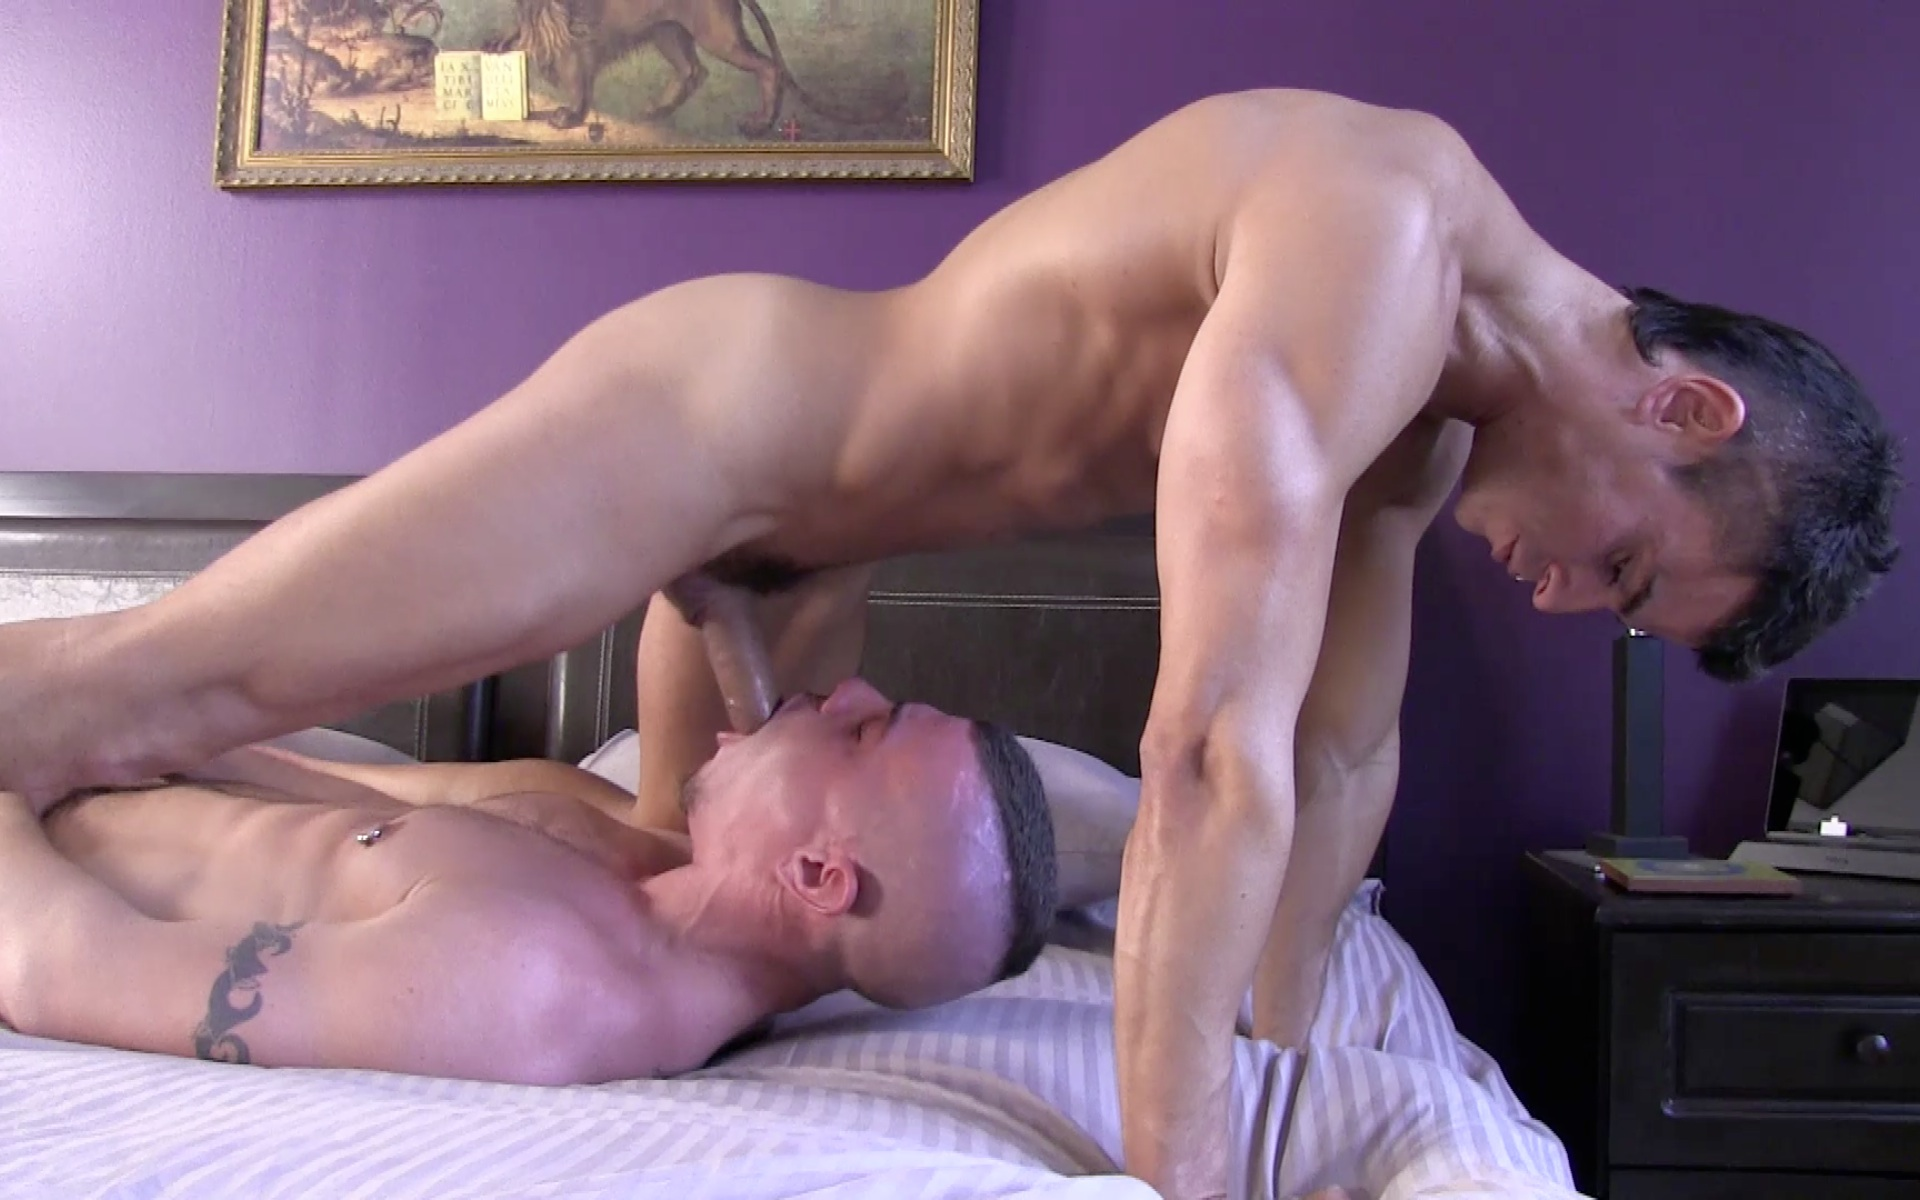 Raw Fuck Club Rafael Carreras and Jesse Santana Cuban bareback breeding Amateur Gay Porn 4 Rafael Carreras and Jesse Santana: Big Cock Cuban Barebacks His Buddy